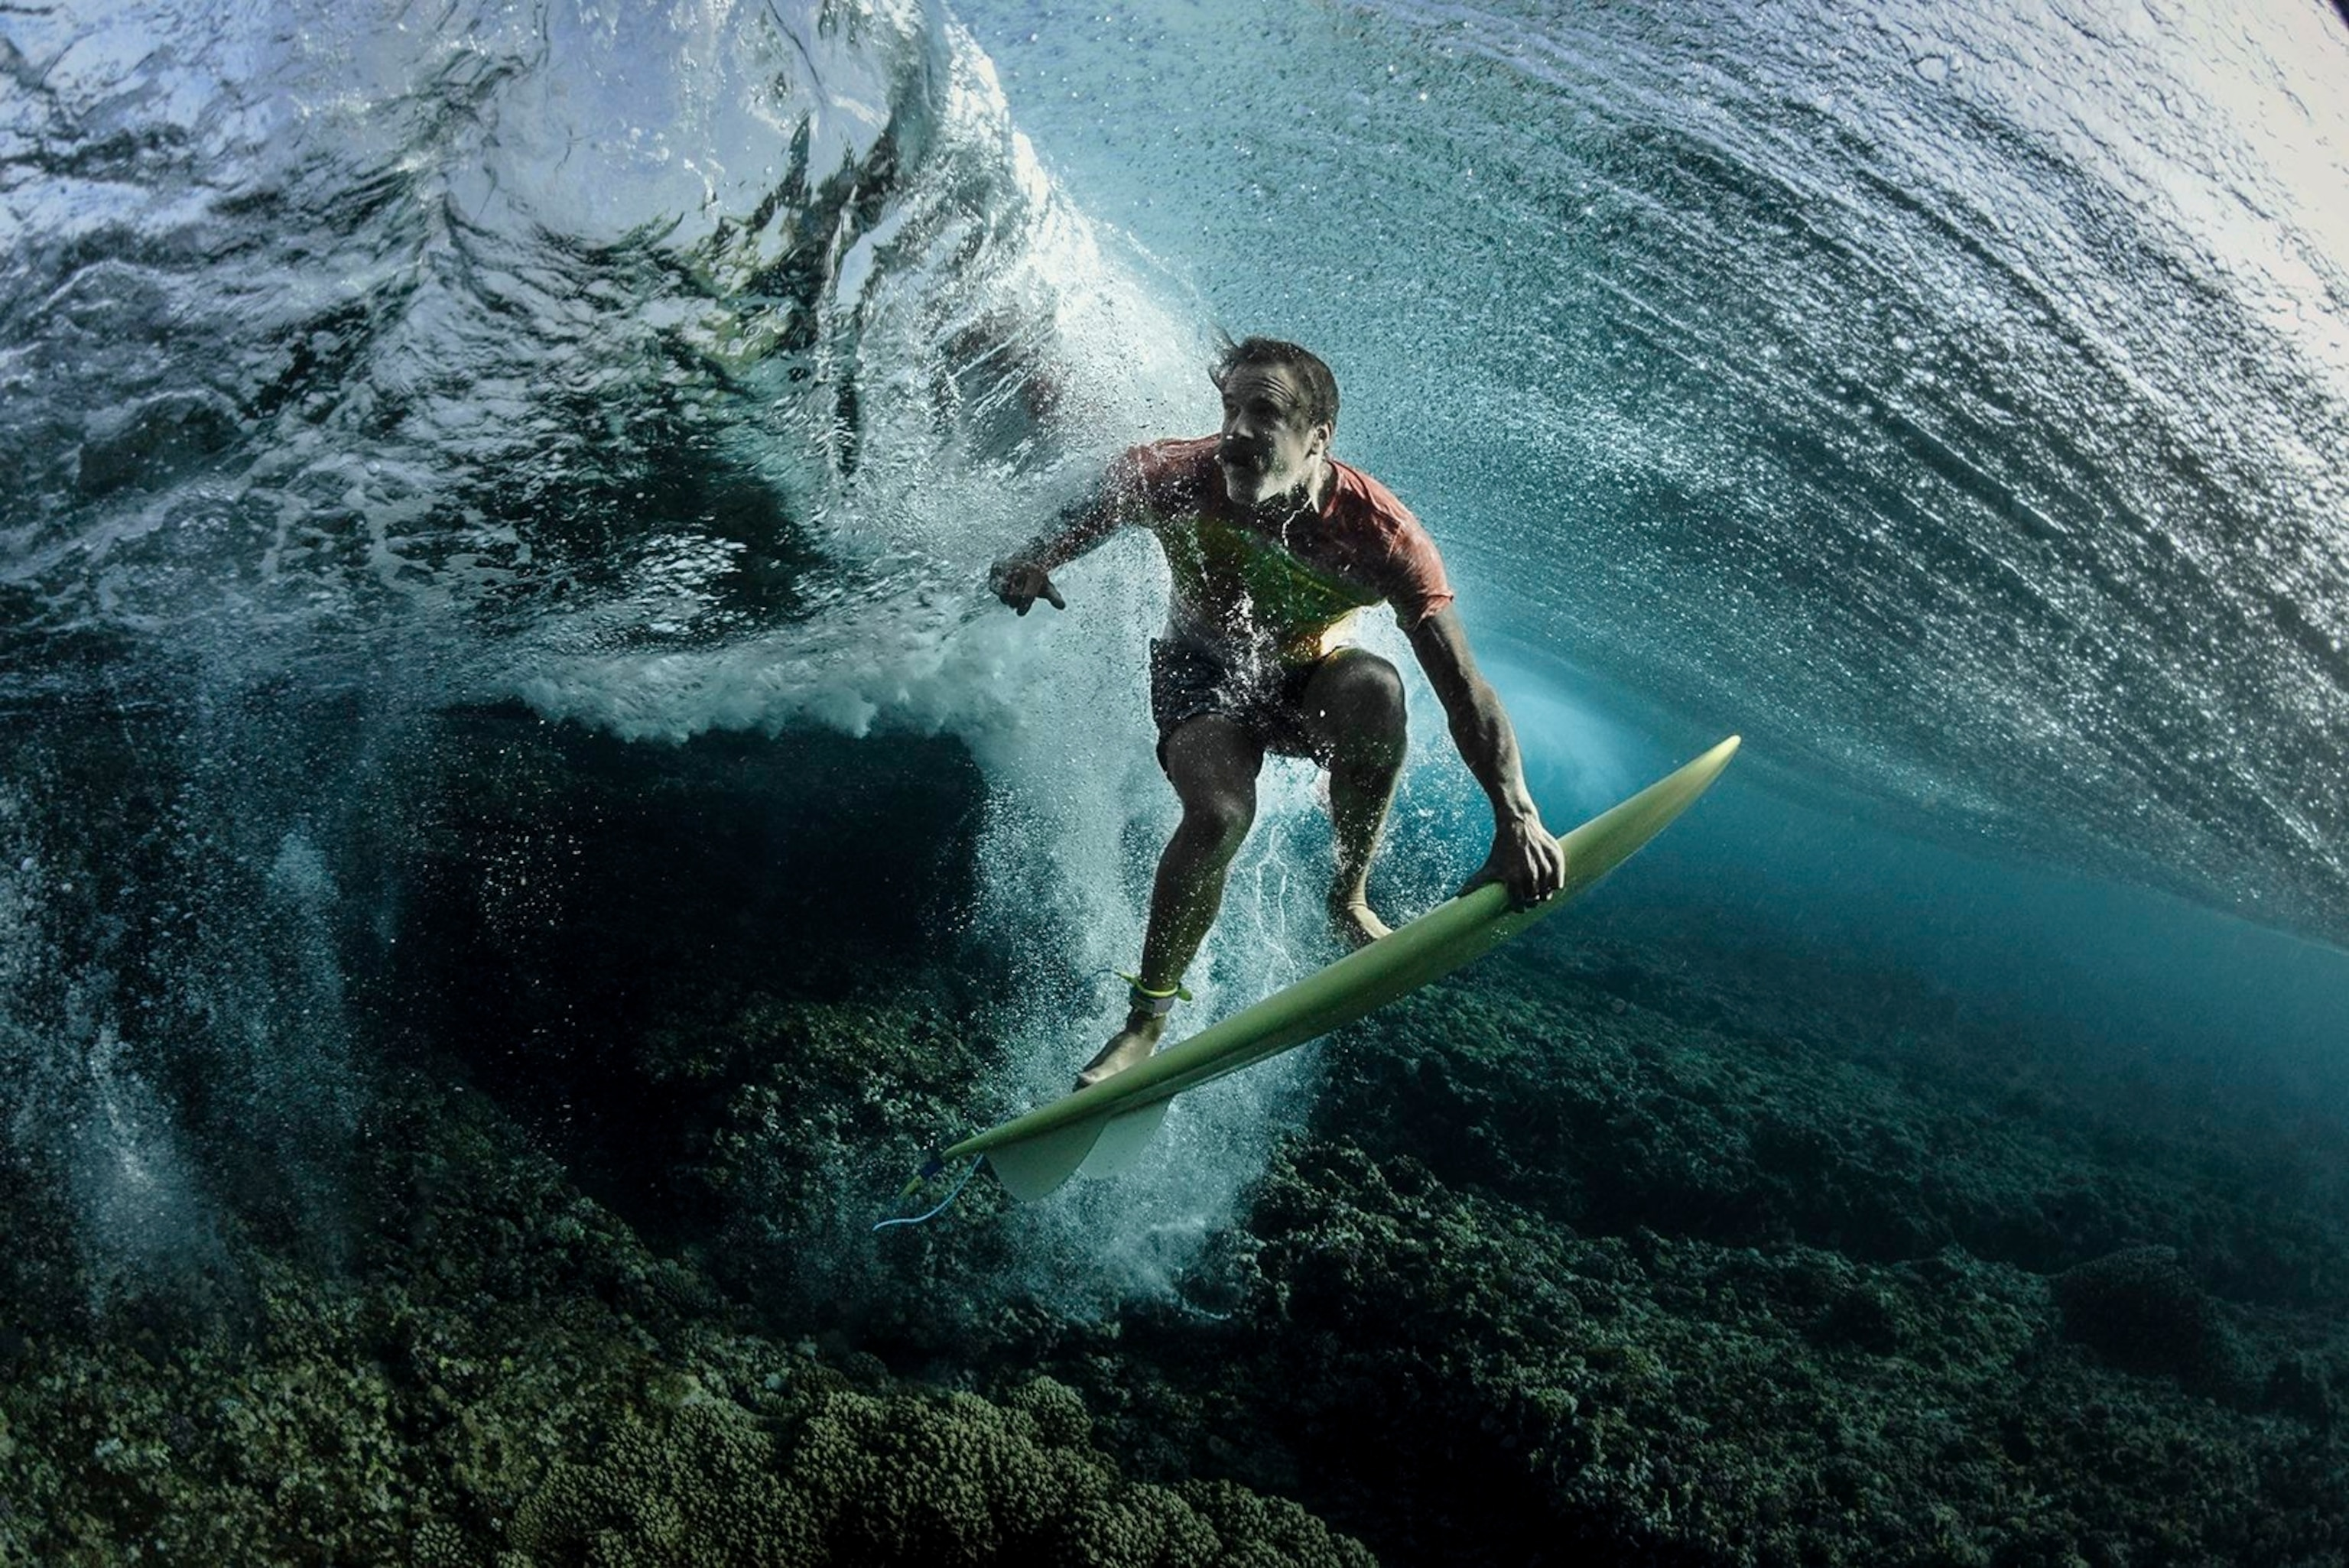 Underwater Surfer Image | National Geographic Your Shot Photo of the Day